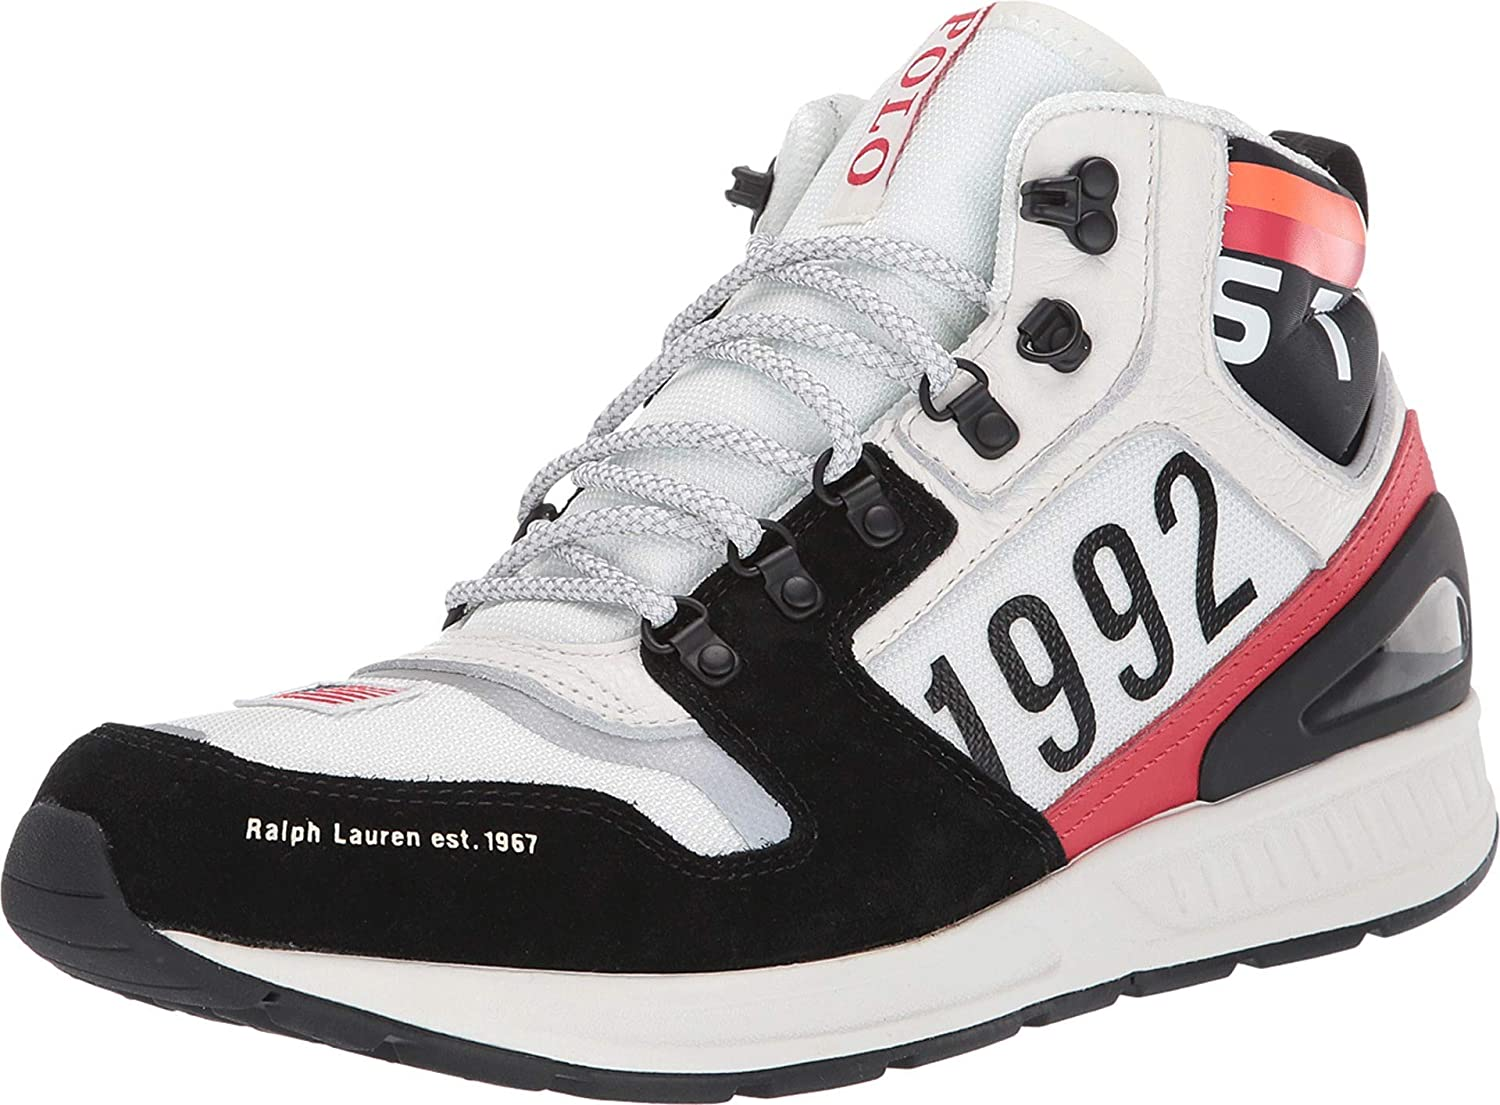 Polo Ralph Lauren Train 100 Mid, Negro (Negro/Blanco/Rojo), 46 EU ...